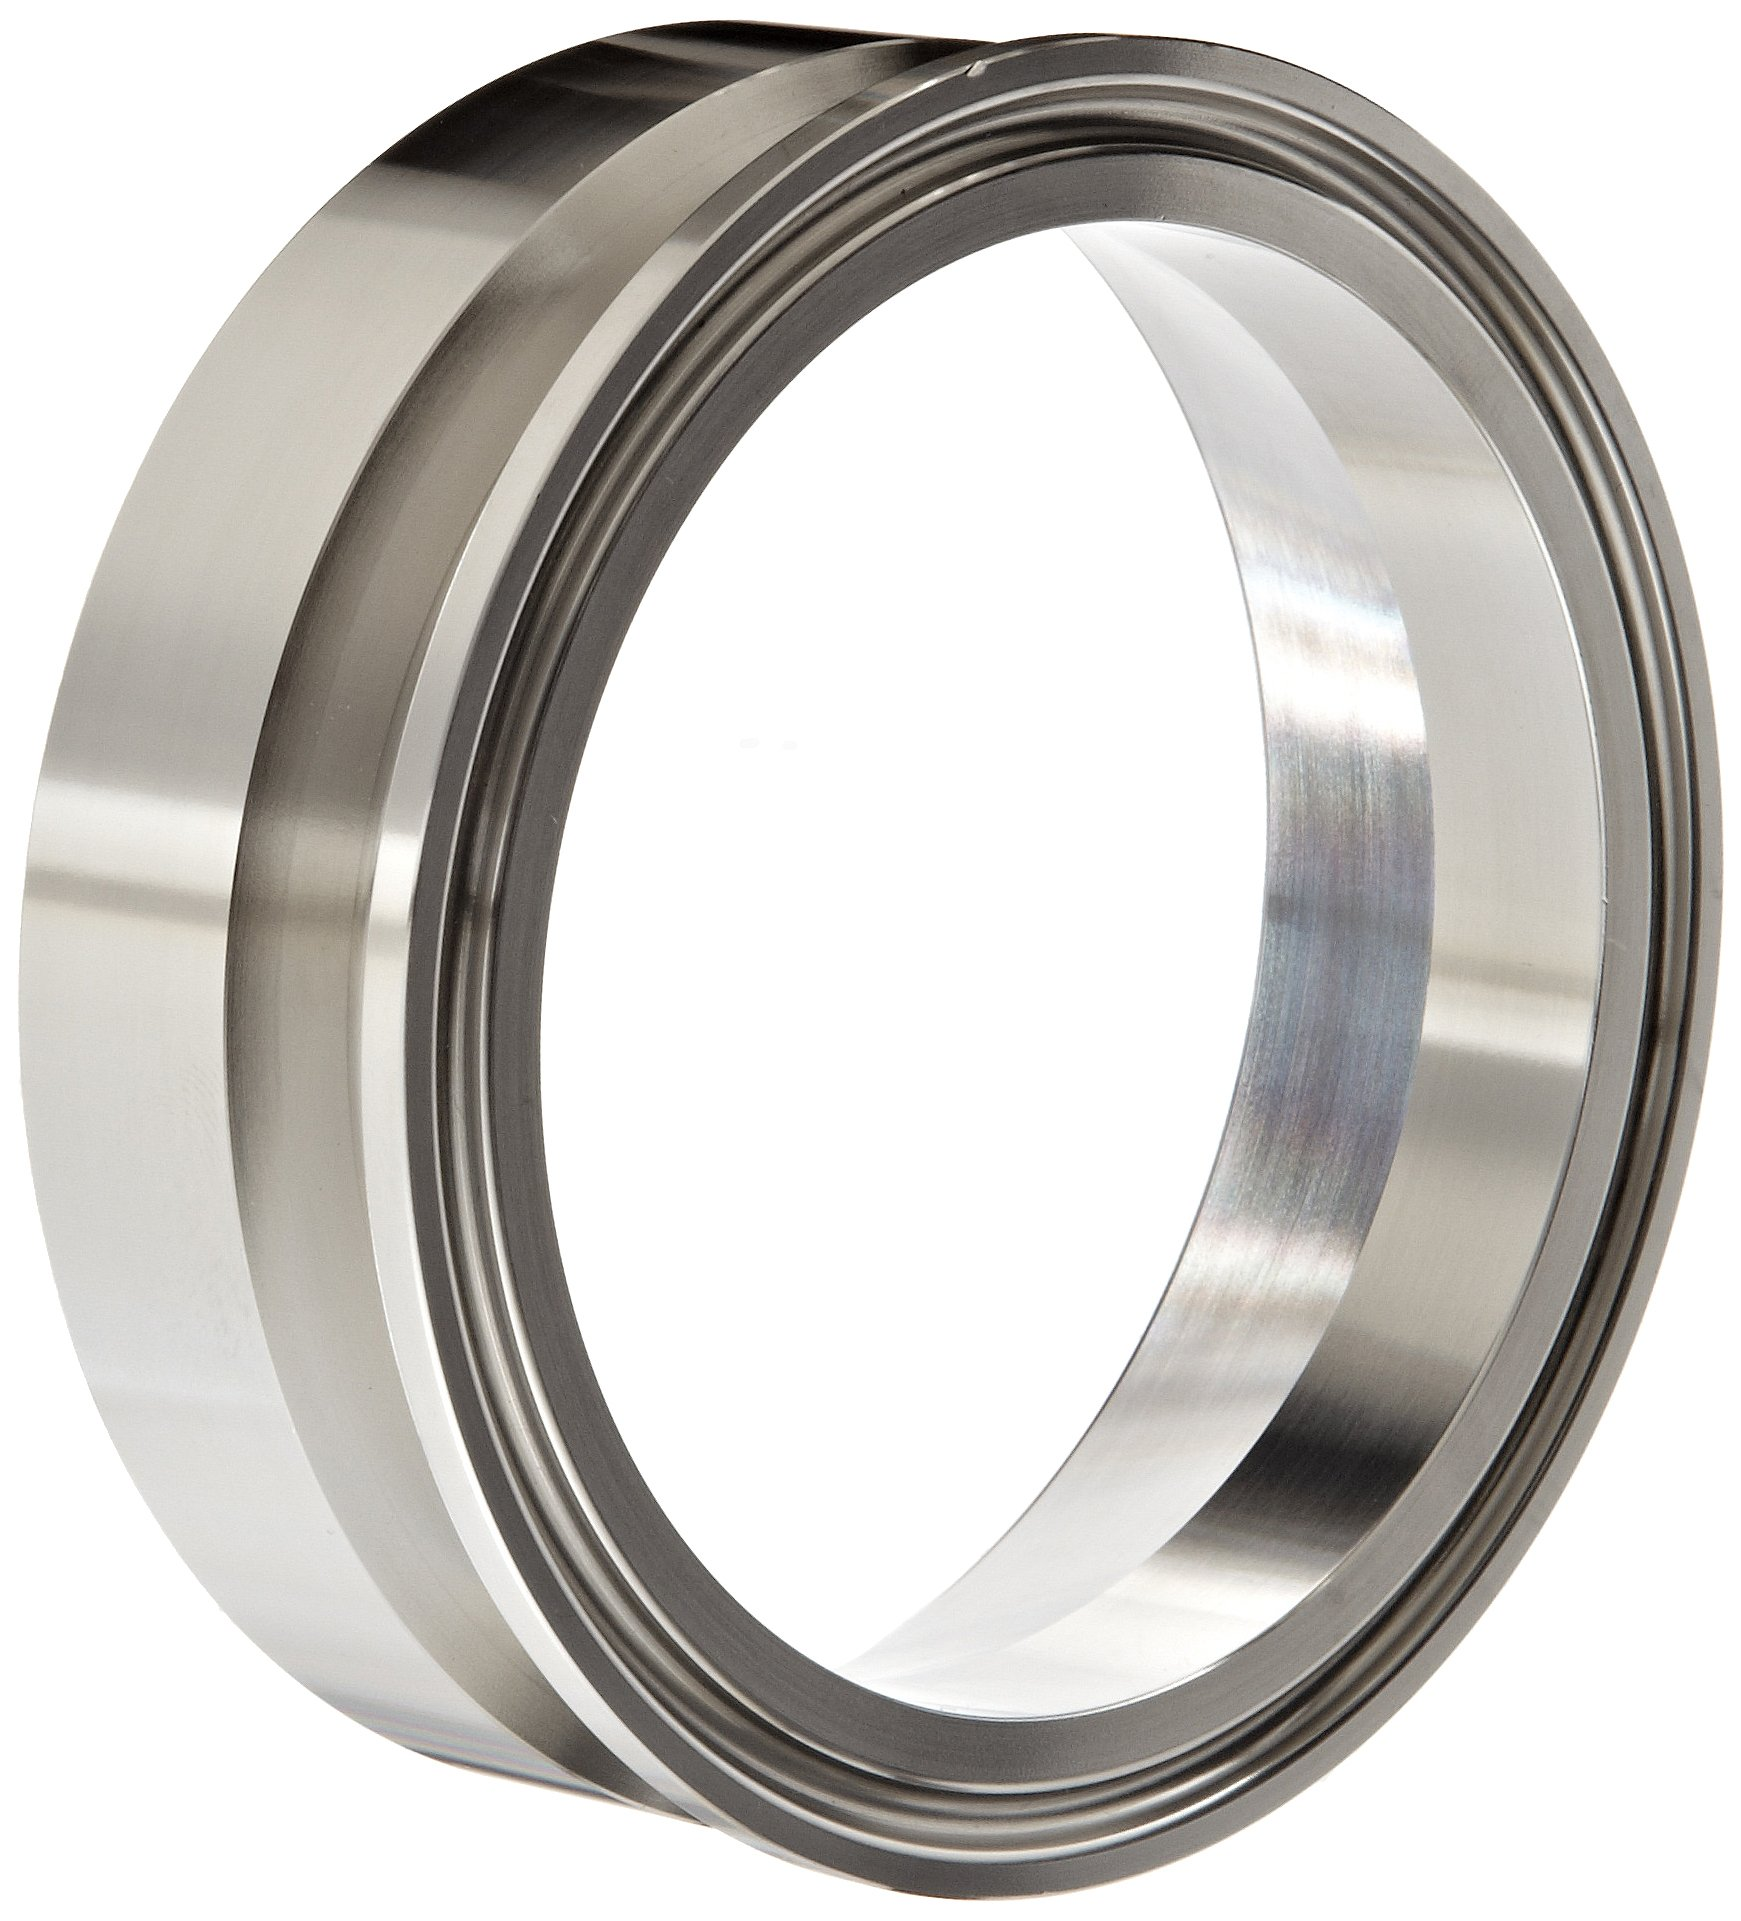 Dixon B19MPX-R300 Stainless Steel 316L Sanitary Fitting, Clamp x Schedule 10 Weld Adapter, 3'' Pipe Size